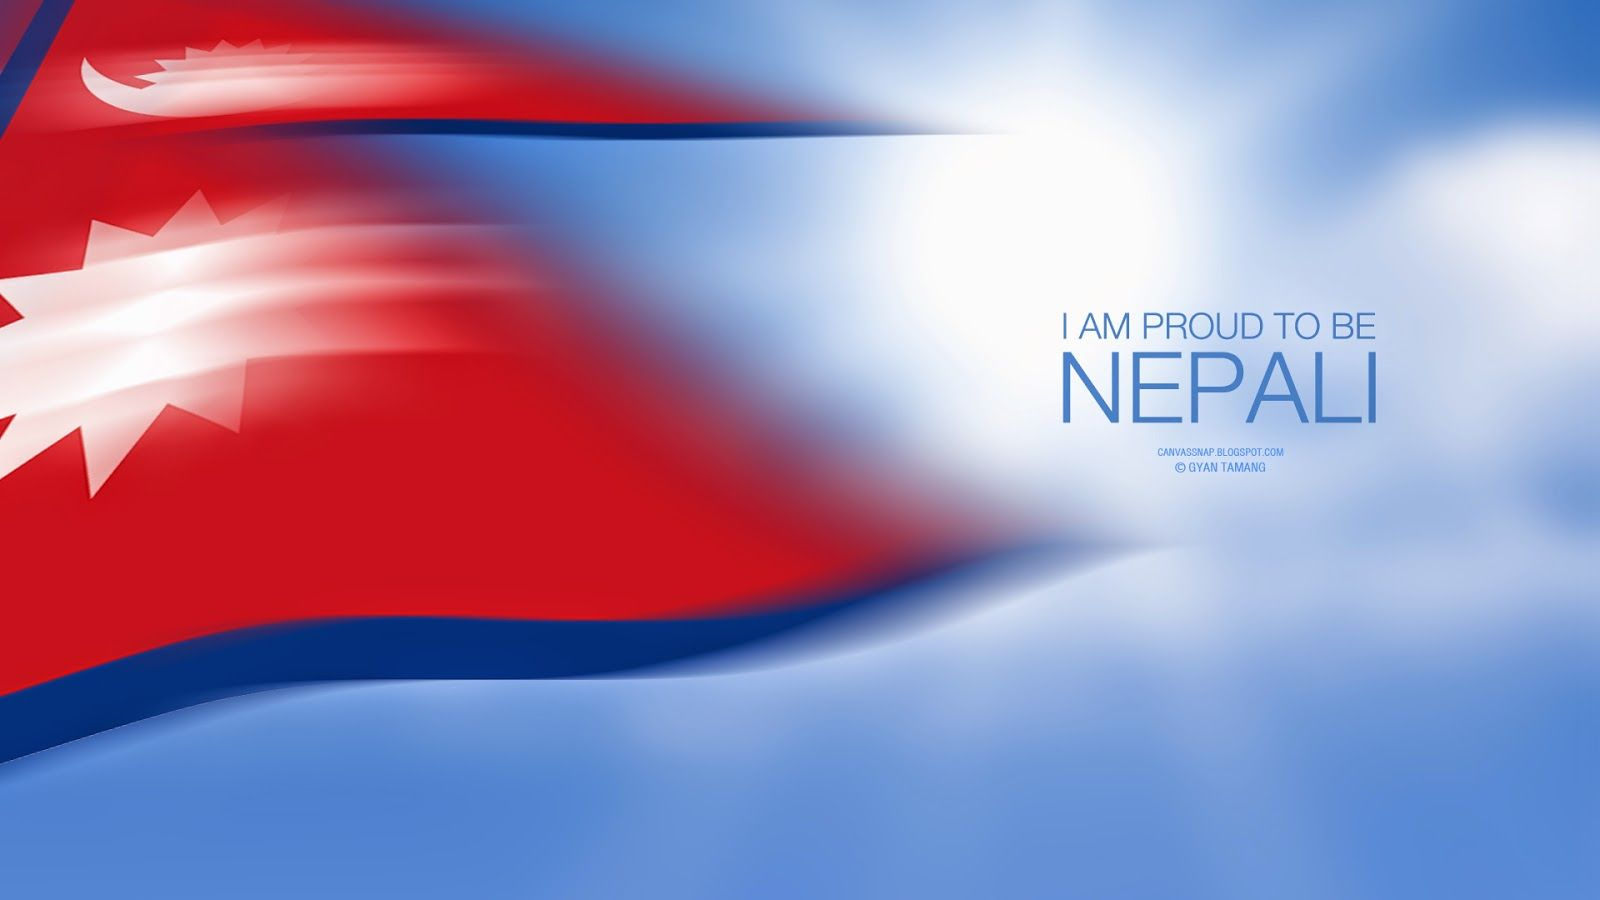 1600x900 Canvassnap: I am Proud to be Nepali